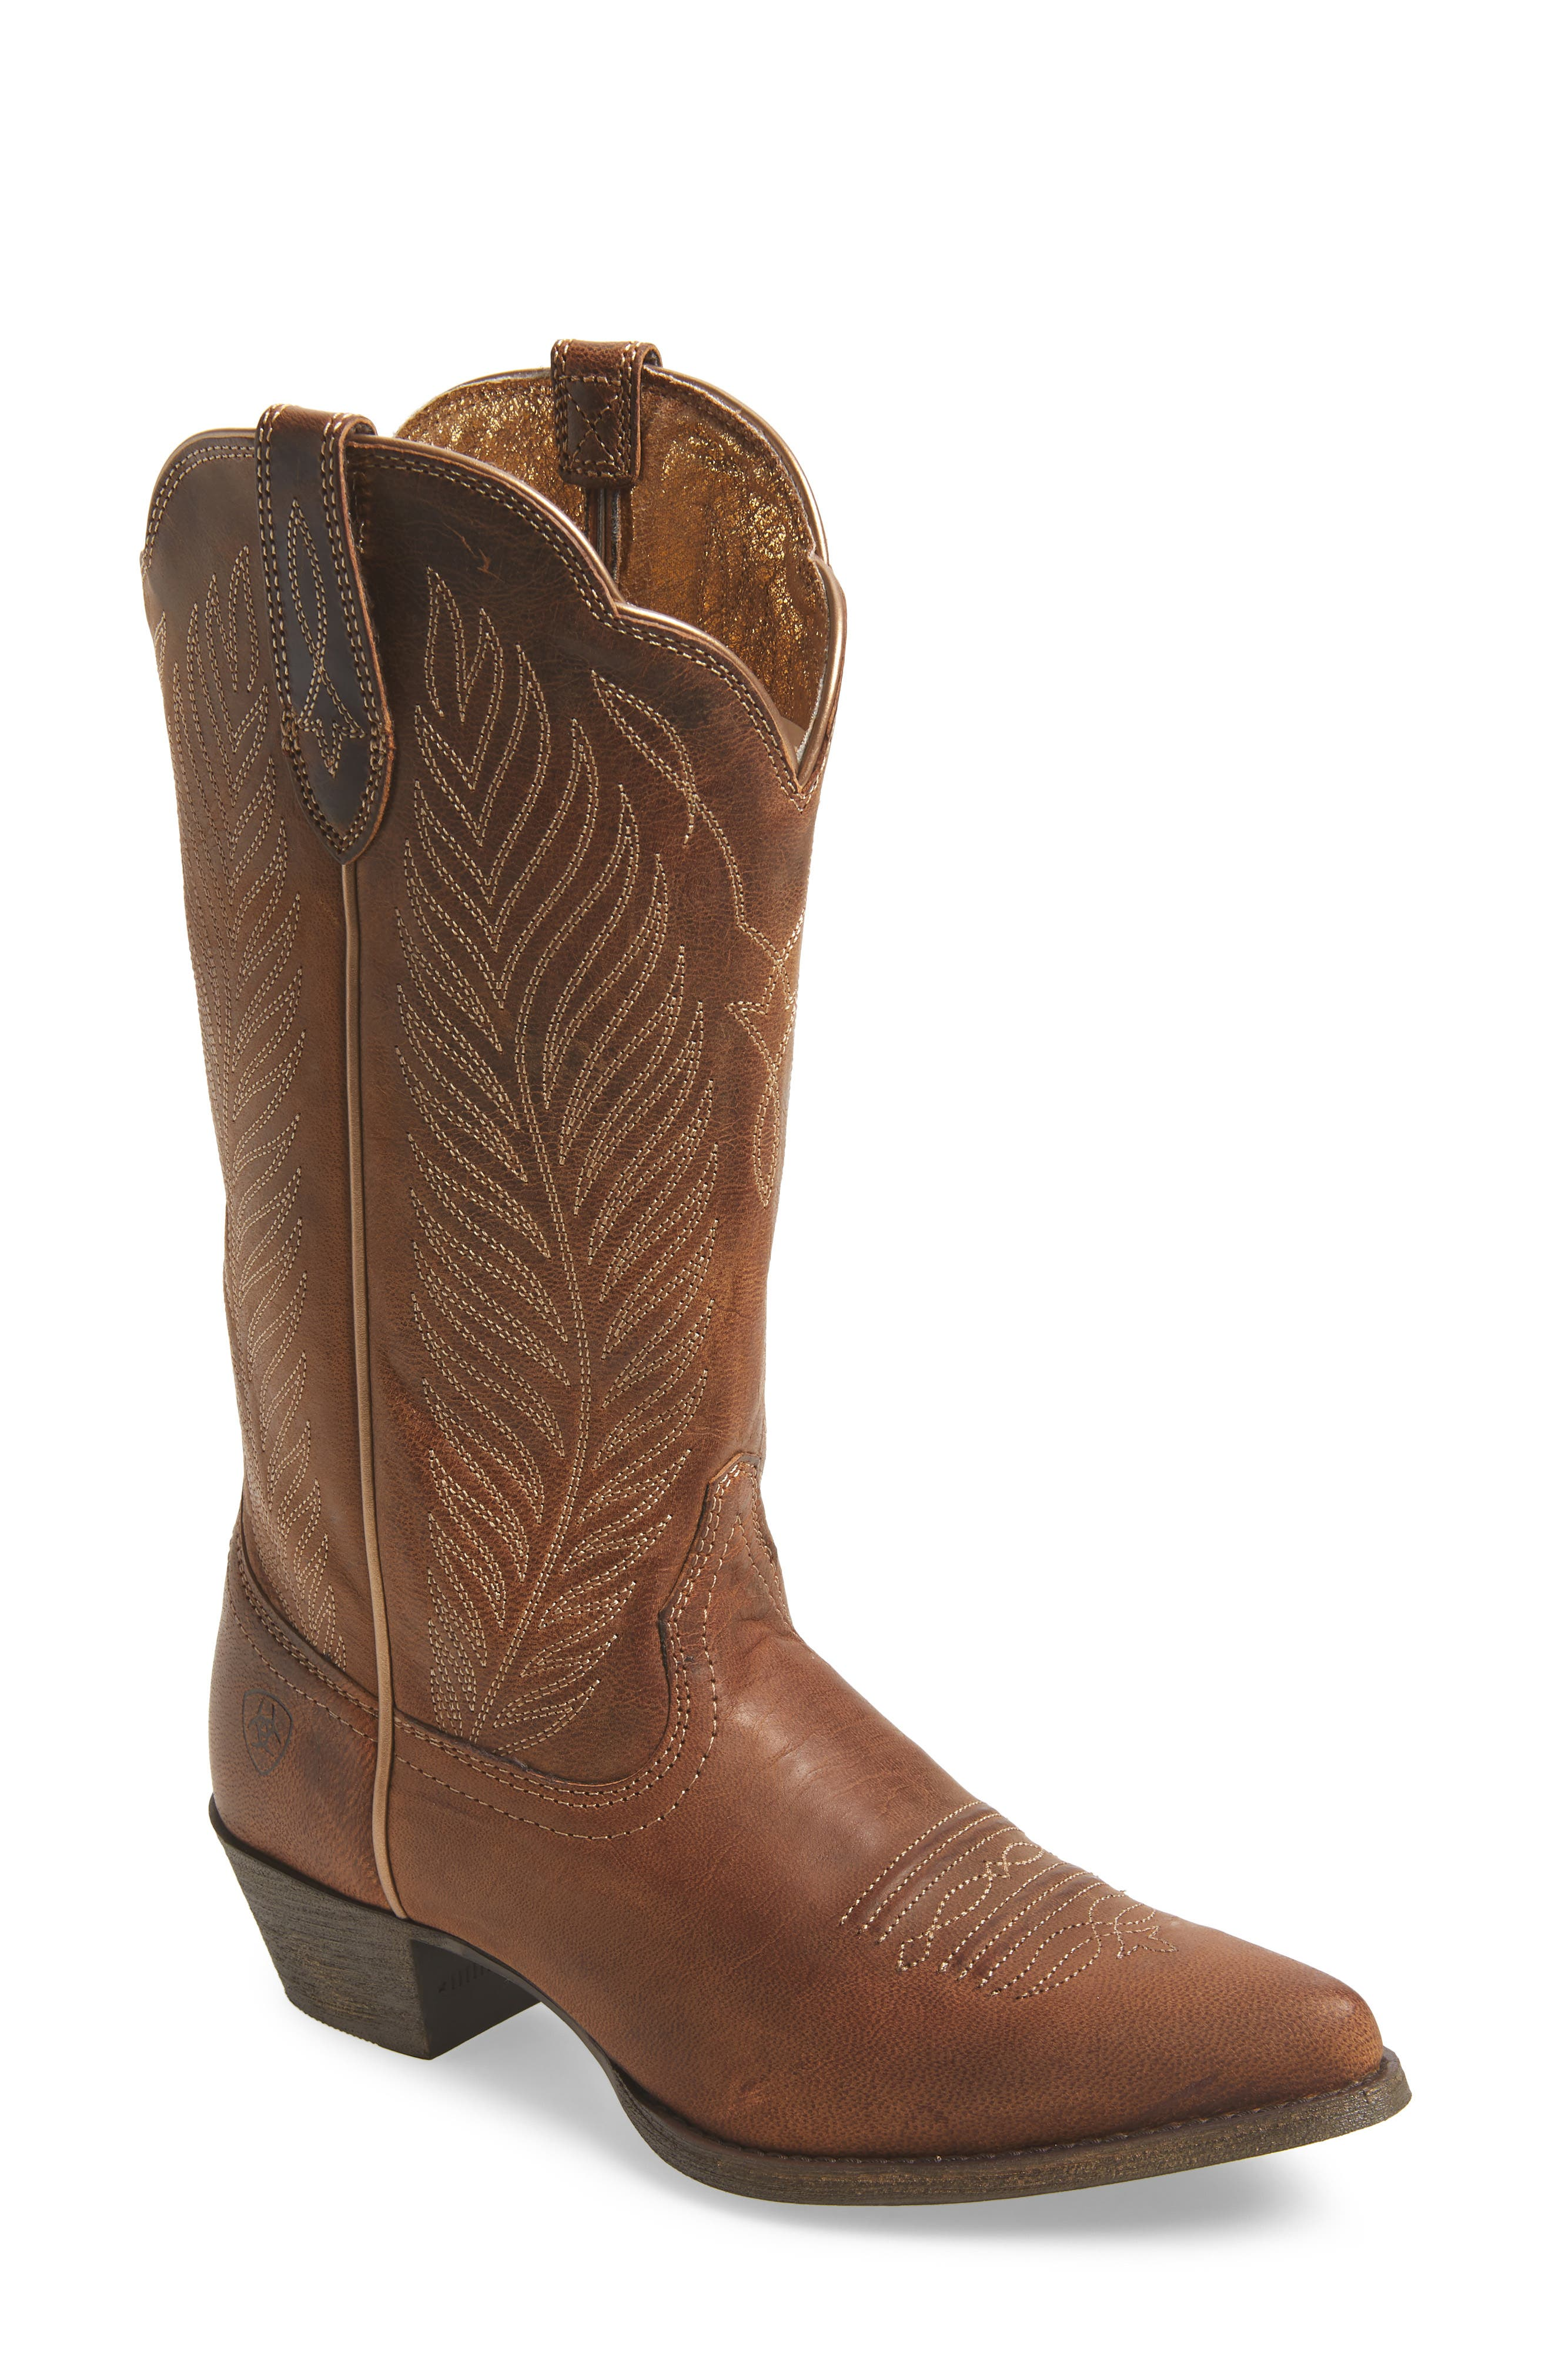 ARIAT, Round-Up Johanna Western Boot, Main thumbnail 1, color, PEARL LEATHER